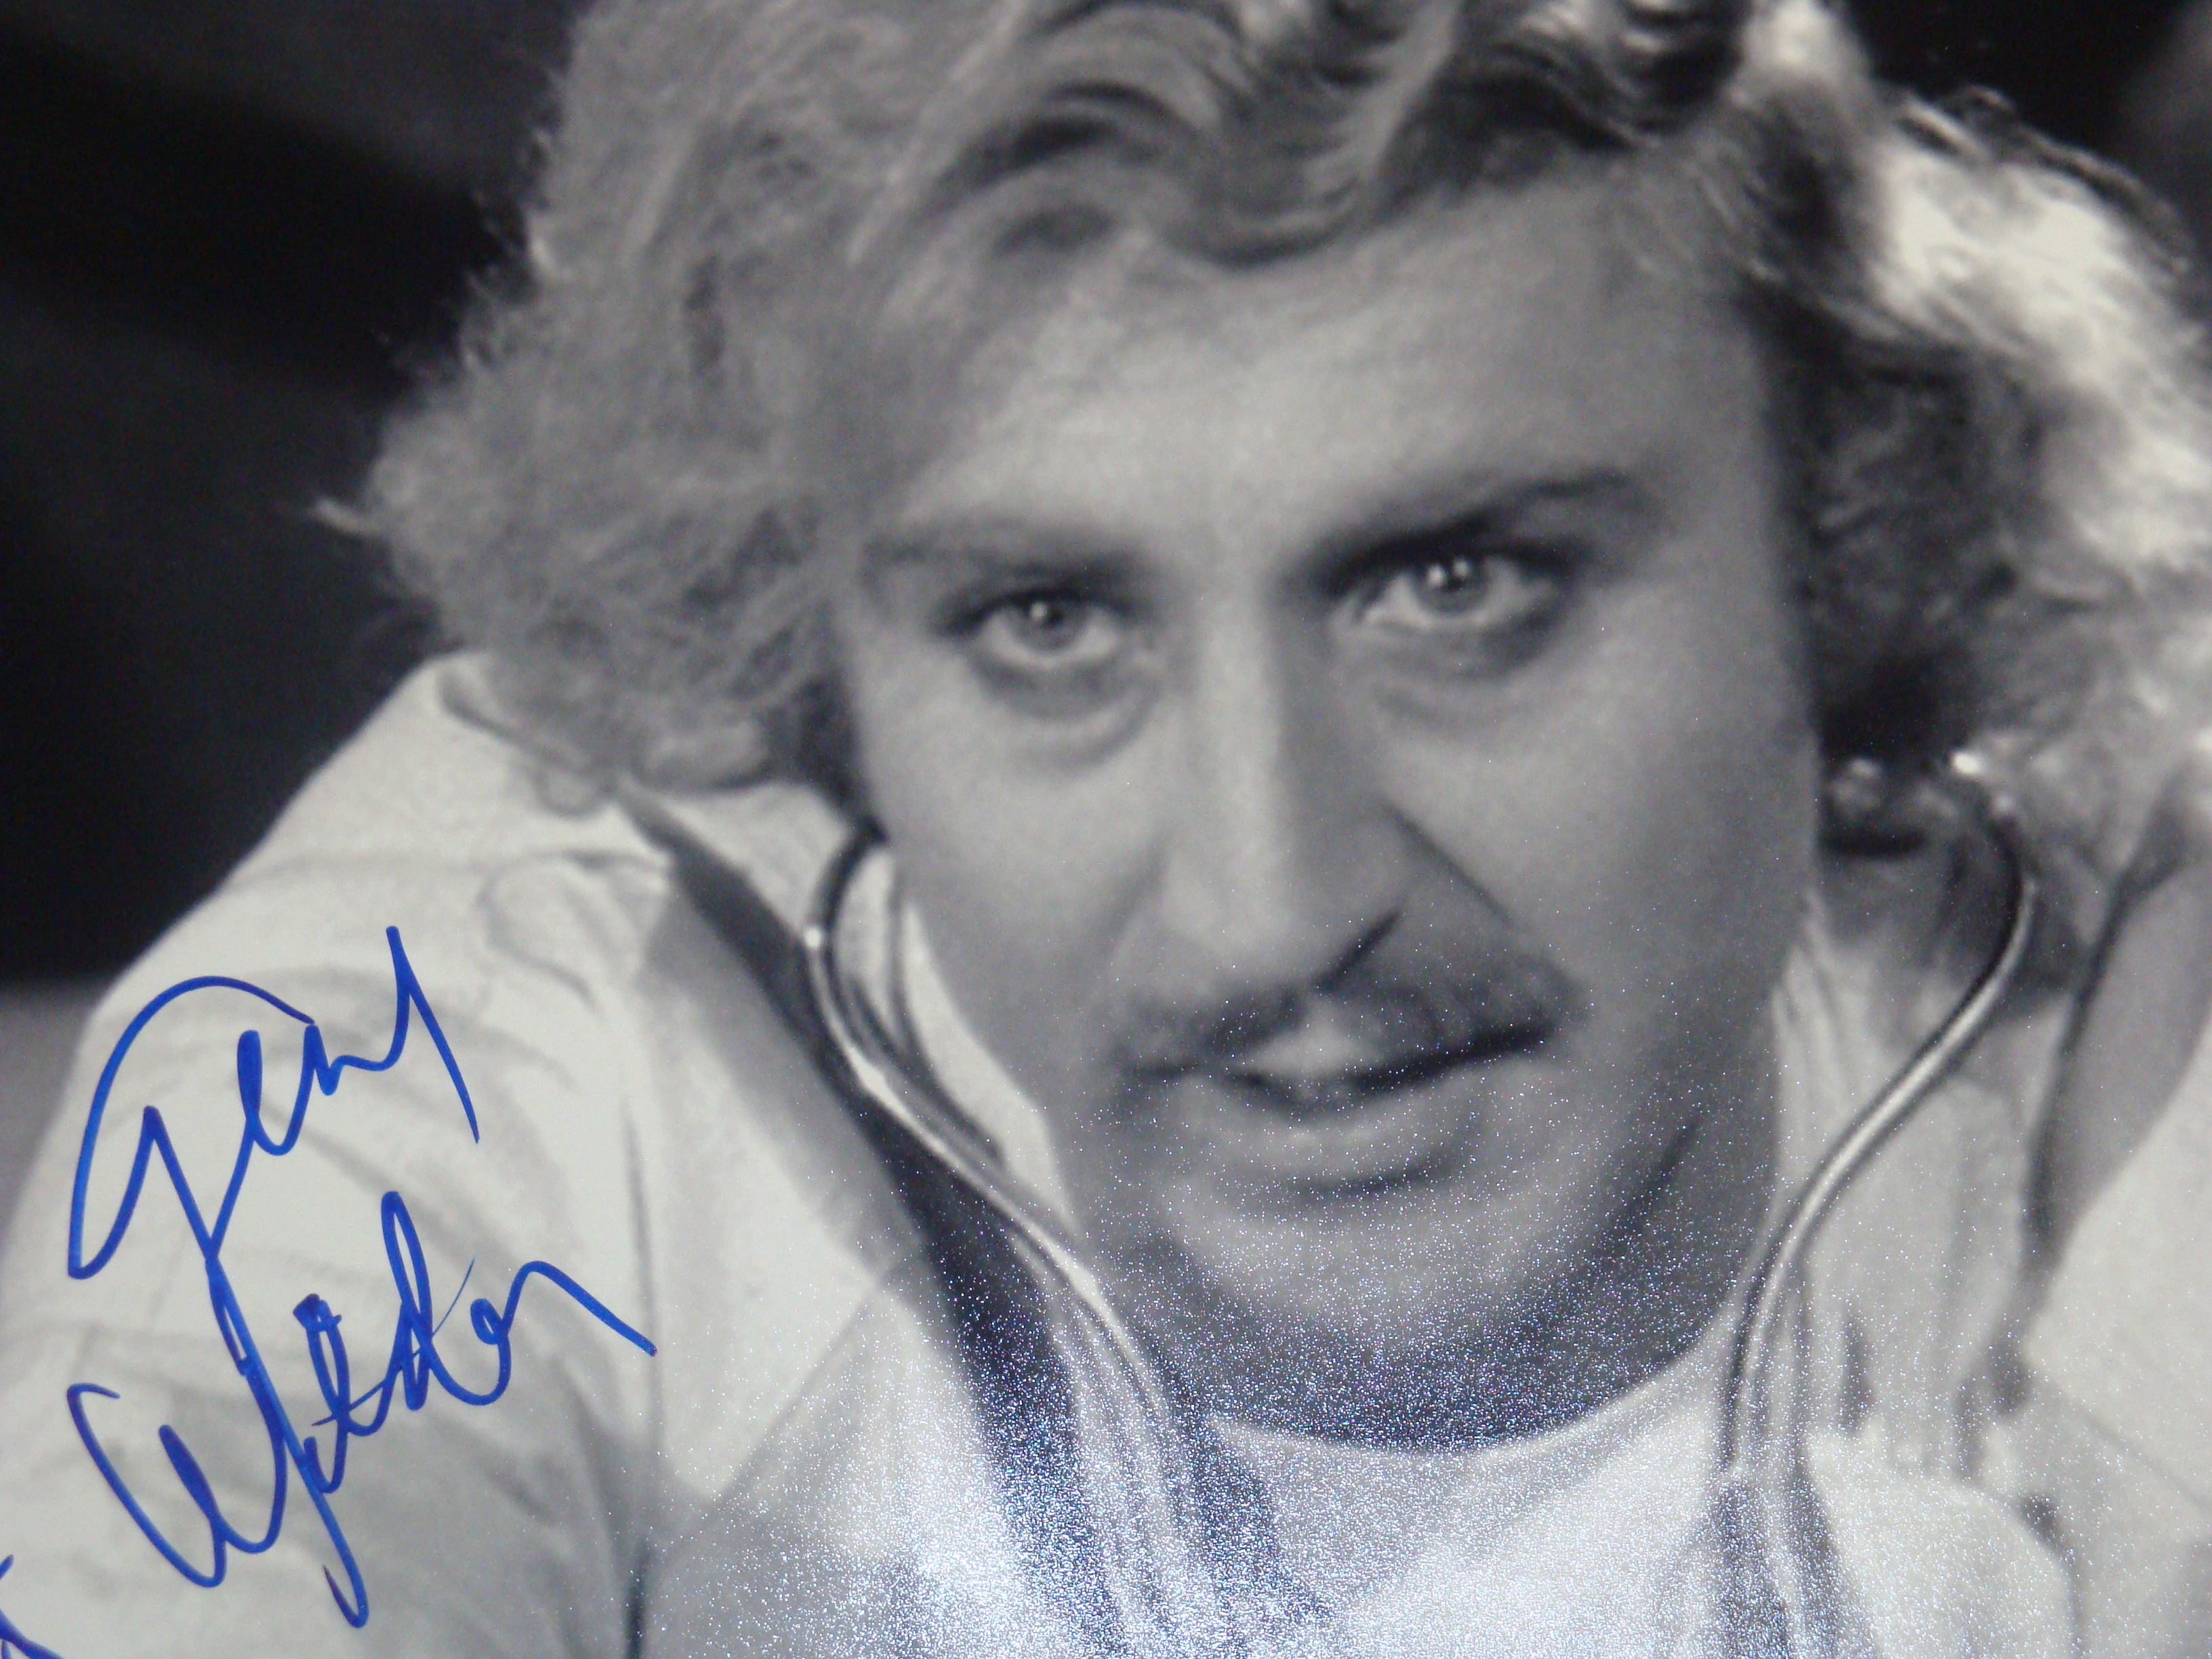 Gene wilder photo hand signed 11x14 with certificate of authenticity